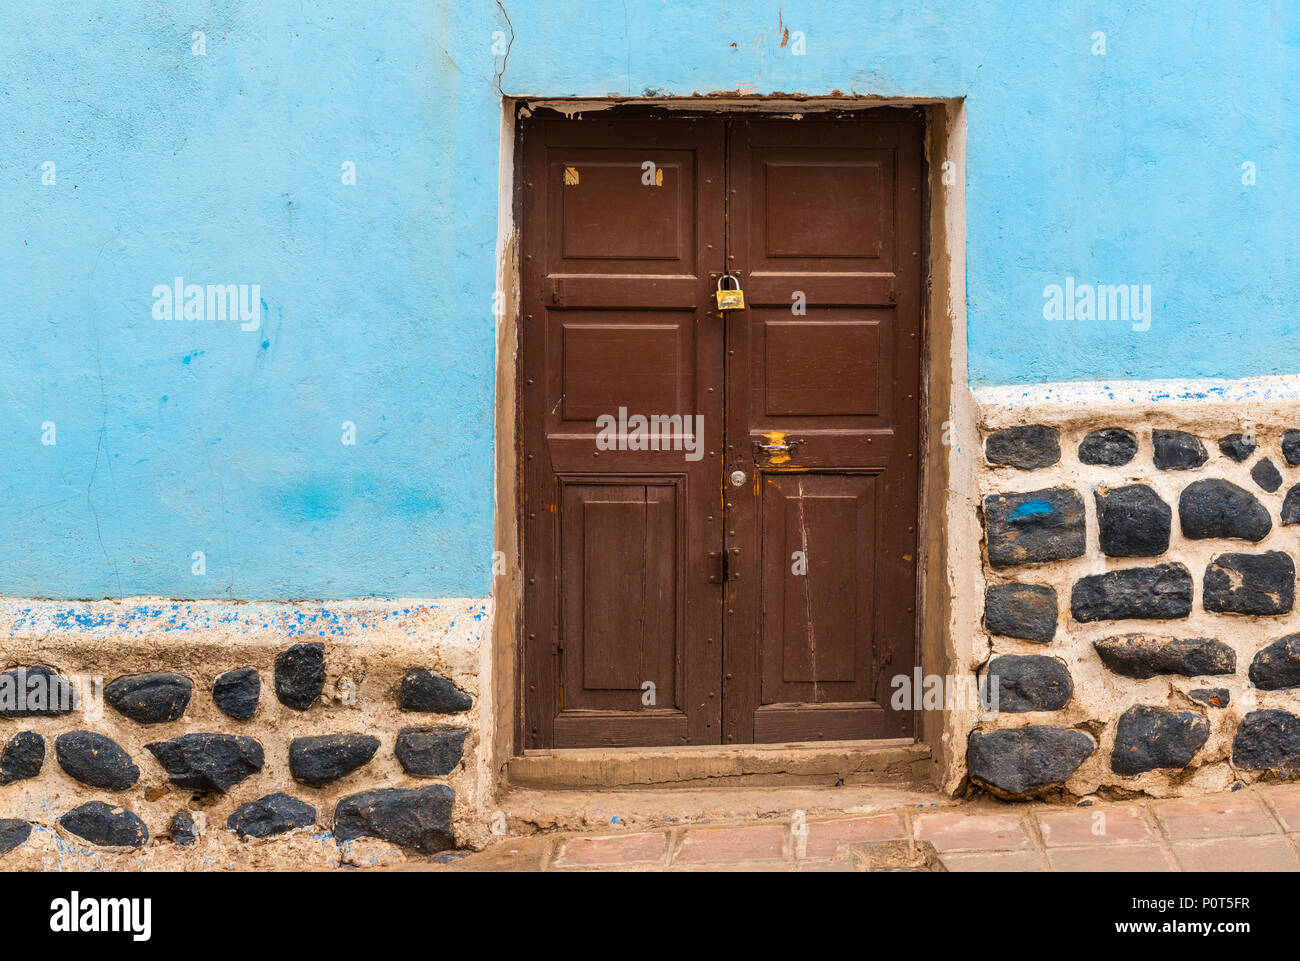 Colourful facade with wooden door in the city center of Potosi (Unesco World Heritage Site), famous for its colonial architecture, Bolivia. Stock Photo